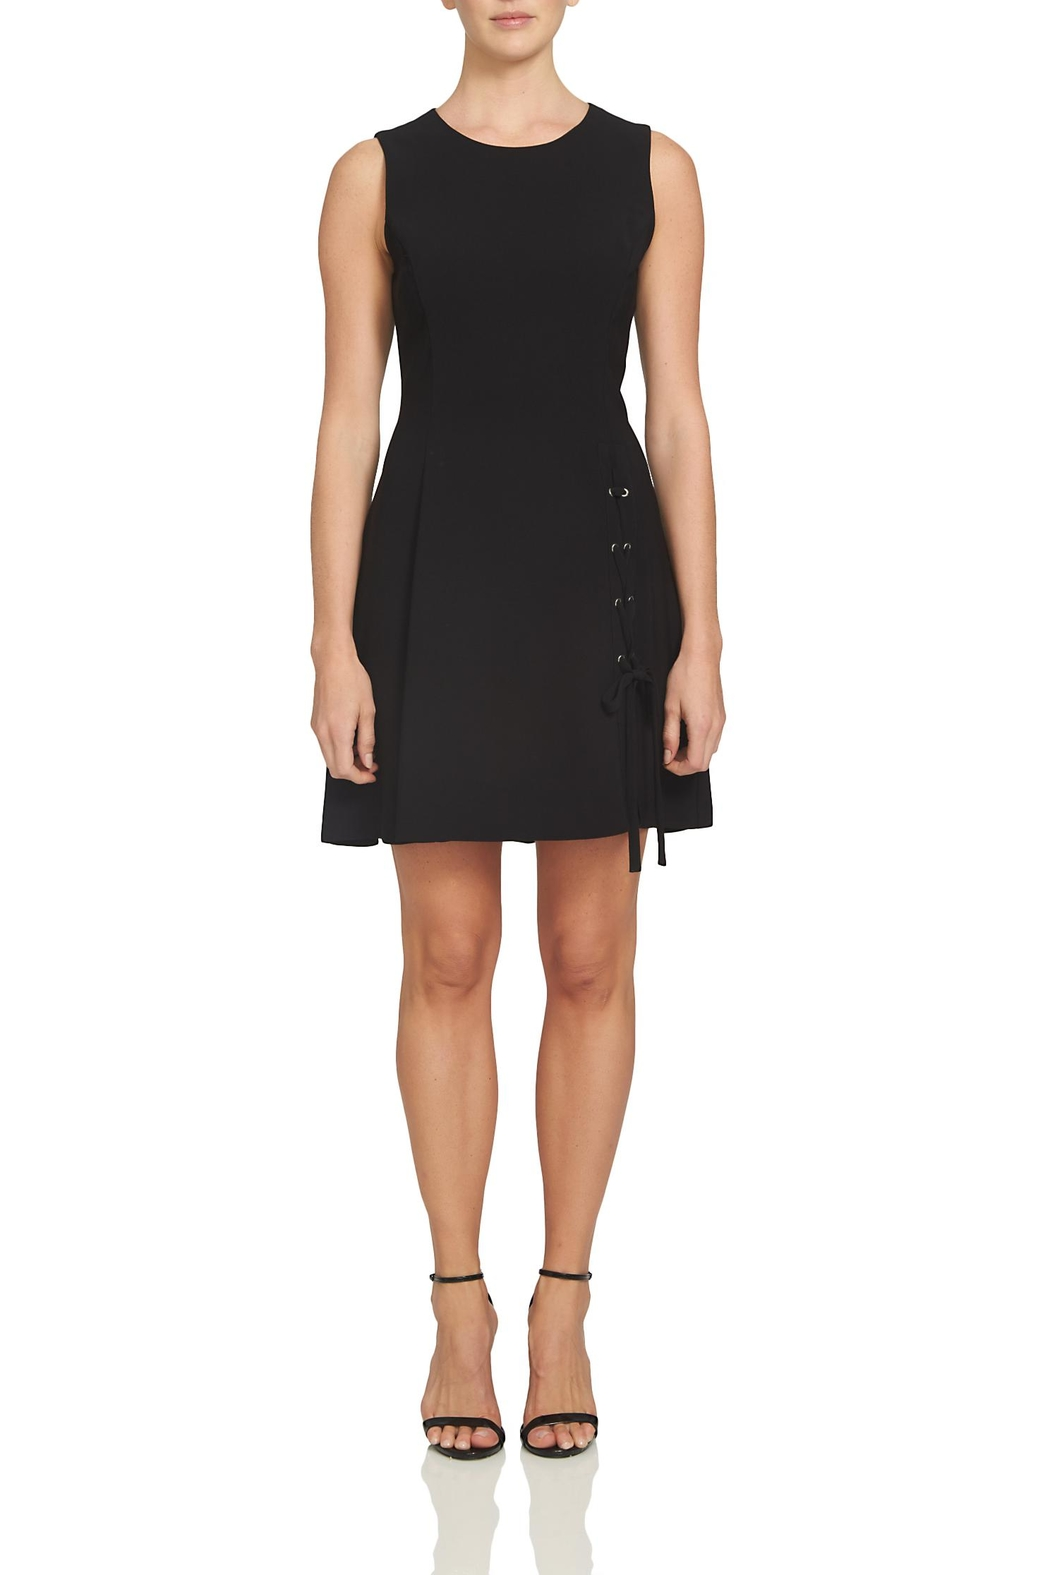 1.State Cross Tie Black Dress - Main Image